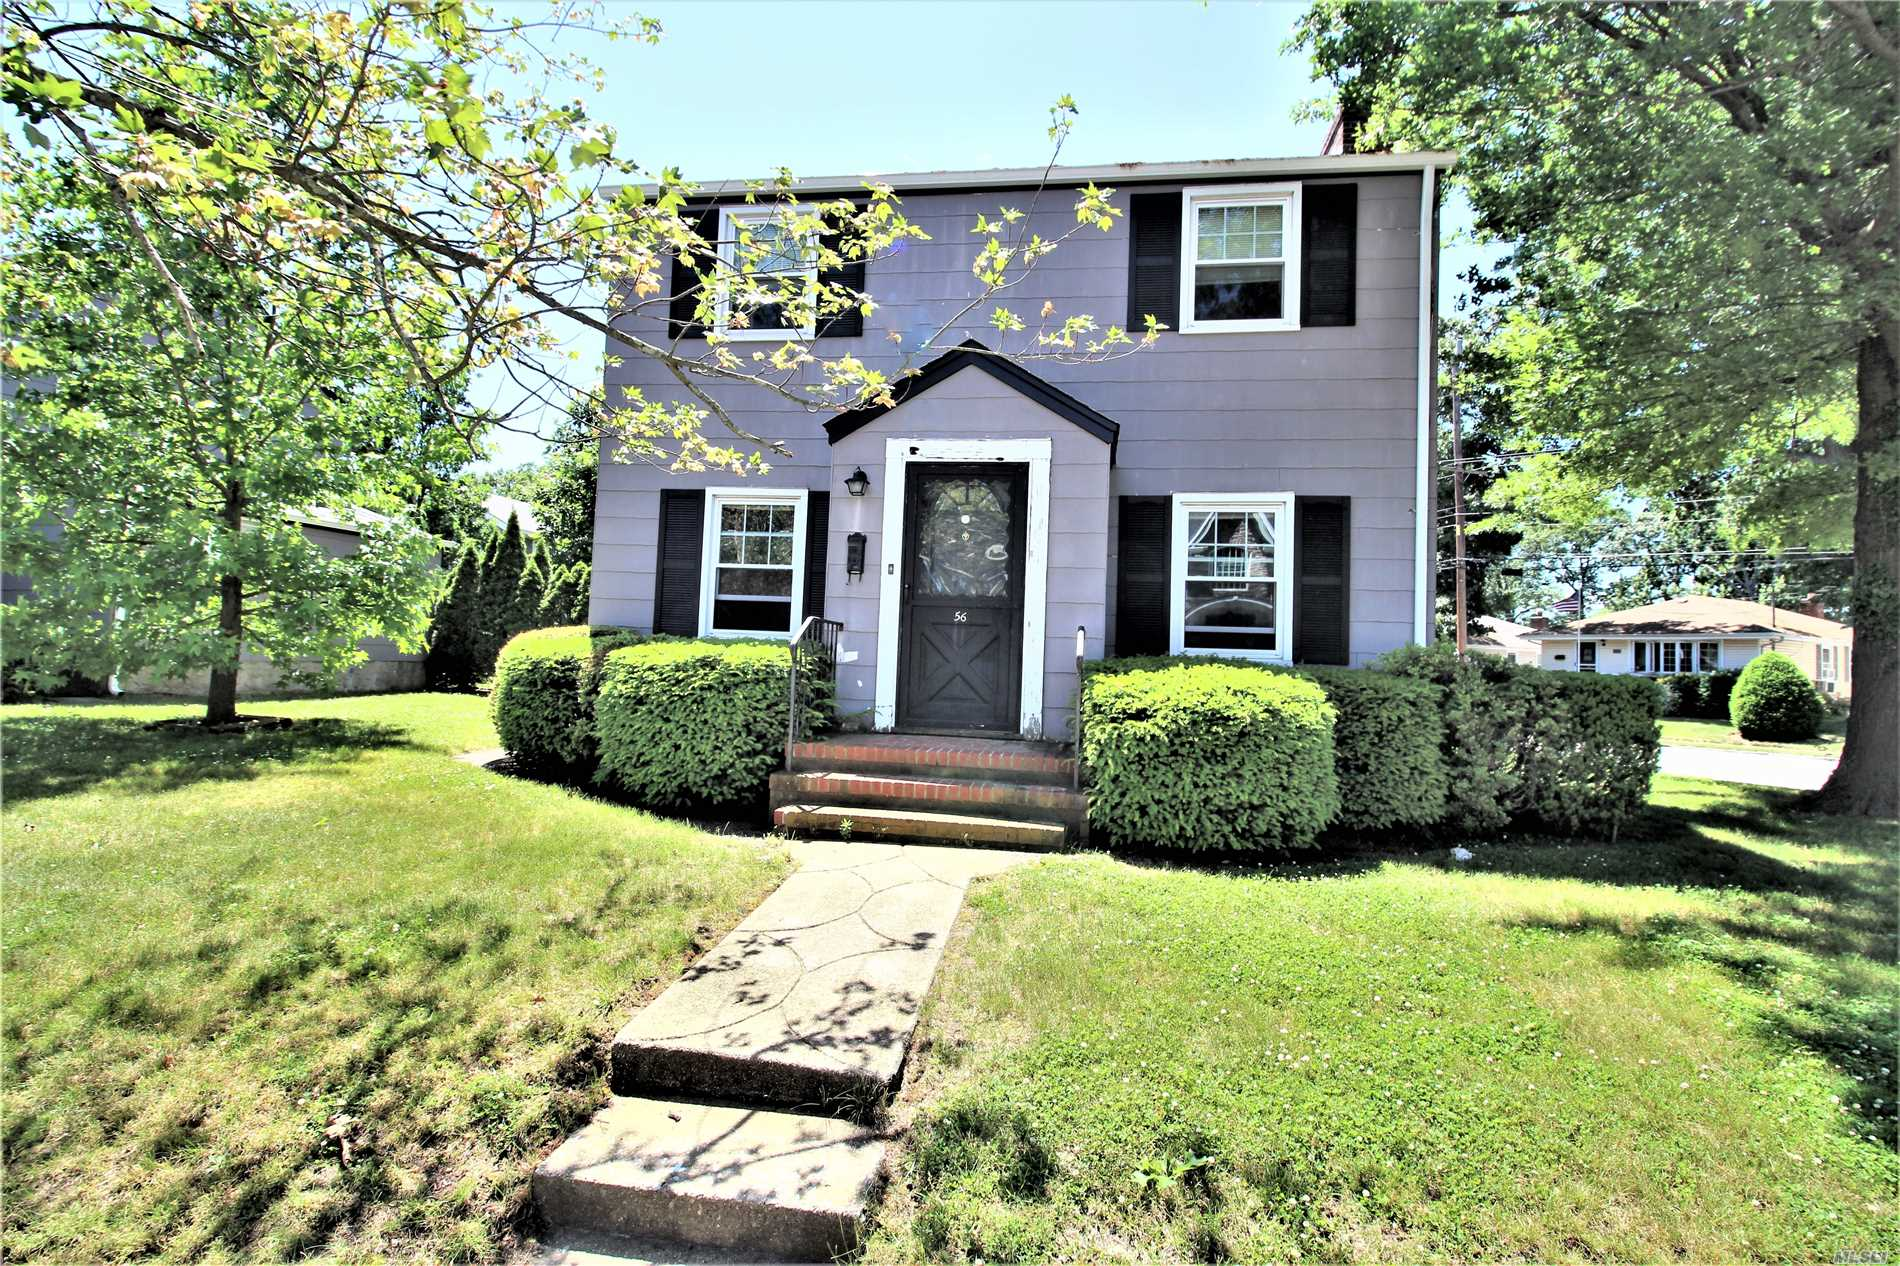 3 Bedroom, 1 Bath Colonial With Full Basement On 50 X 100 Property. Great Opportunity To Customize & Make This Home Your Own. Living Room W/Fireplace & Dining Room Both With Hardwood Floors. Second Level Which Consists Of 3 Bedrooms Including 2 Tandem & 1 Full Bath. Full Basement, Private Partially Fenced Yard. Entryway Door Is Exclusion